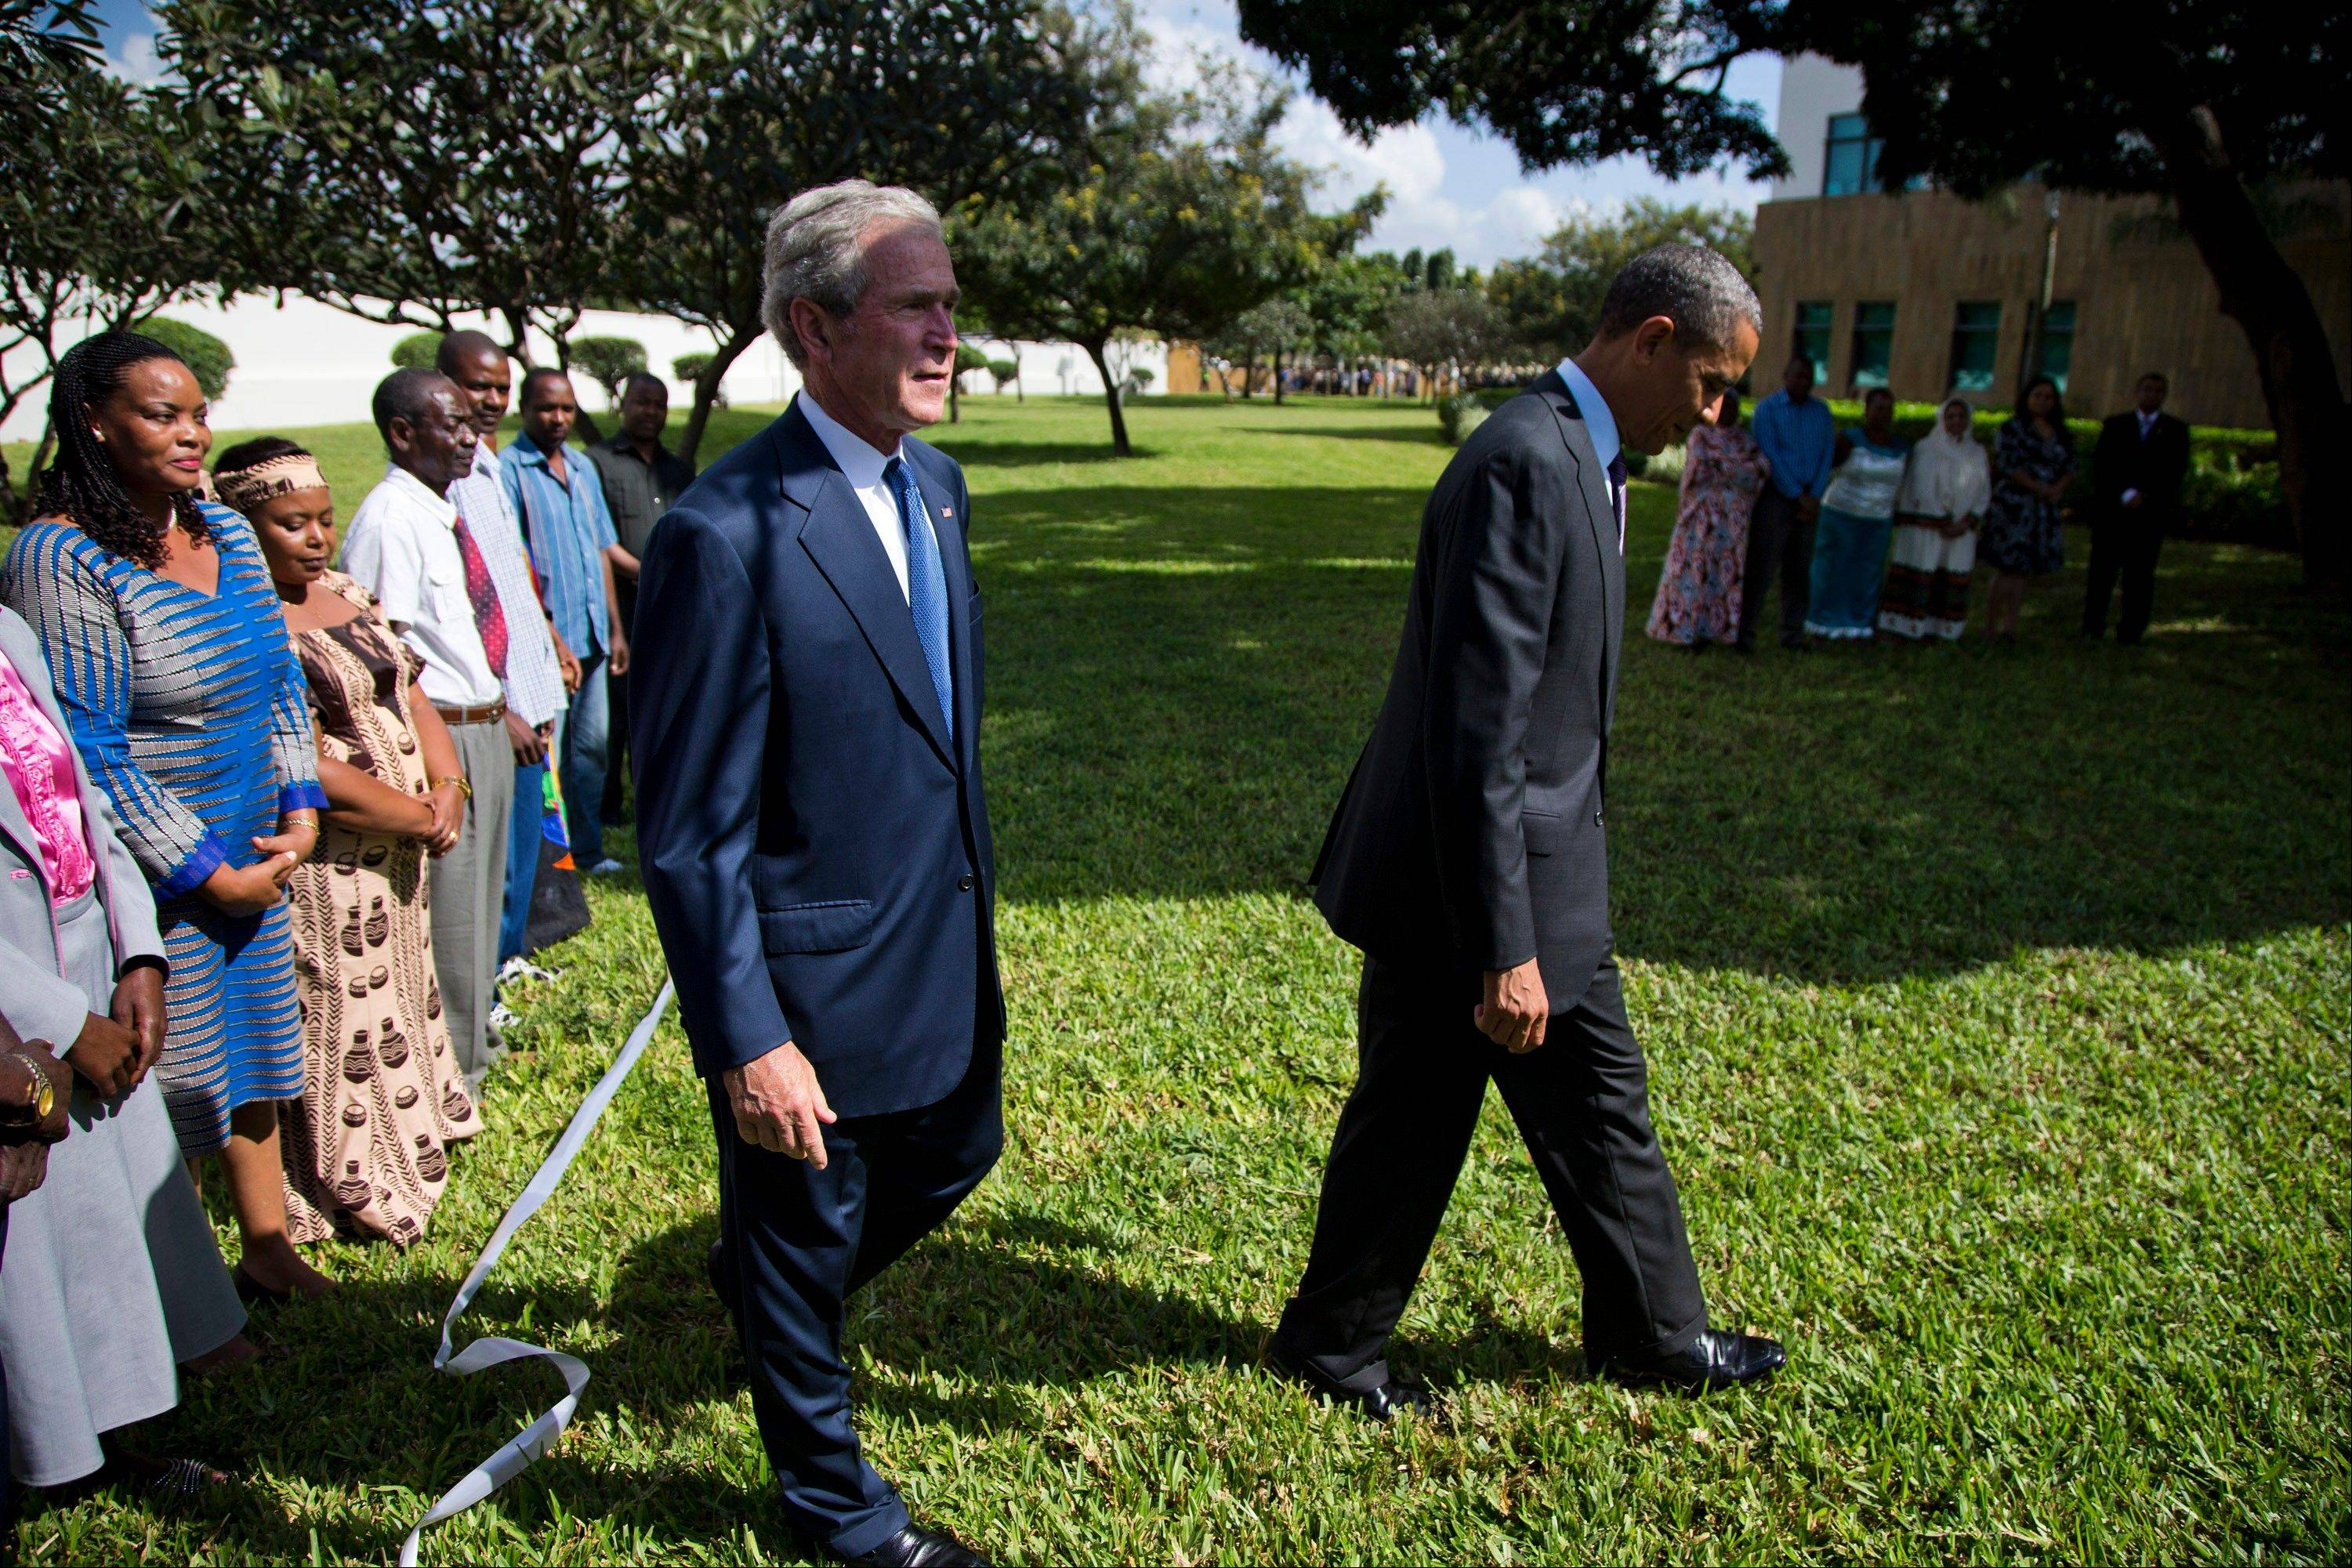 U.S. President Barack Obama, right, and former President George W. Bush walk off after a wreath-laying ceremony to honor the victims of the U.S. embassy bombing on Tuesday, July 2, 2013, in Dar Es Salaam, Tanzania. The president is traveling in Tanzania on the final leg of his three-country tour in Africa.